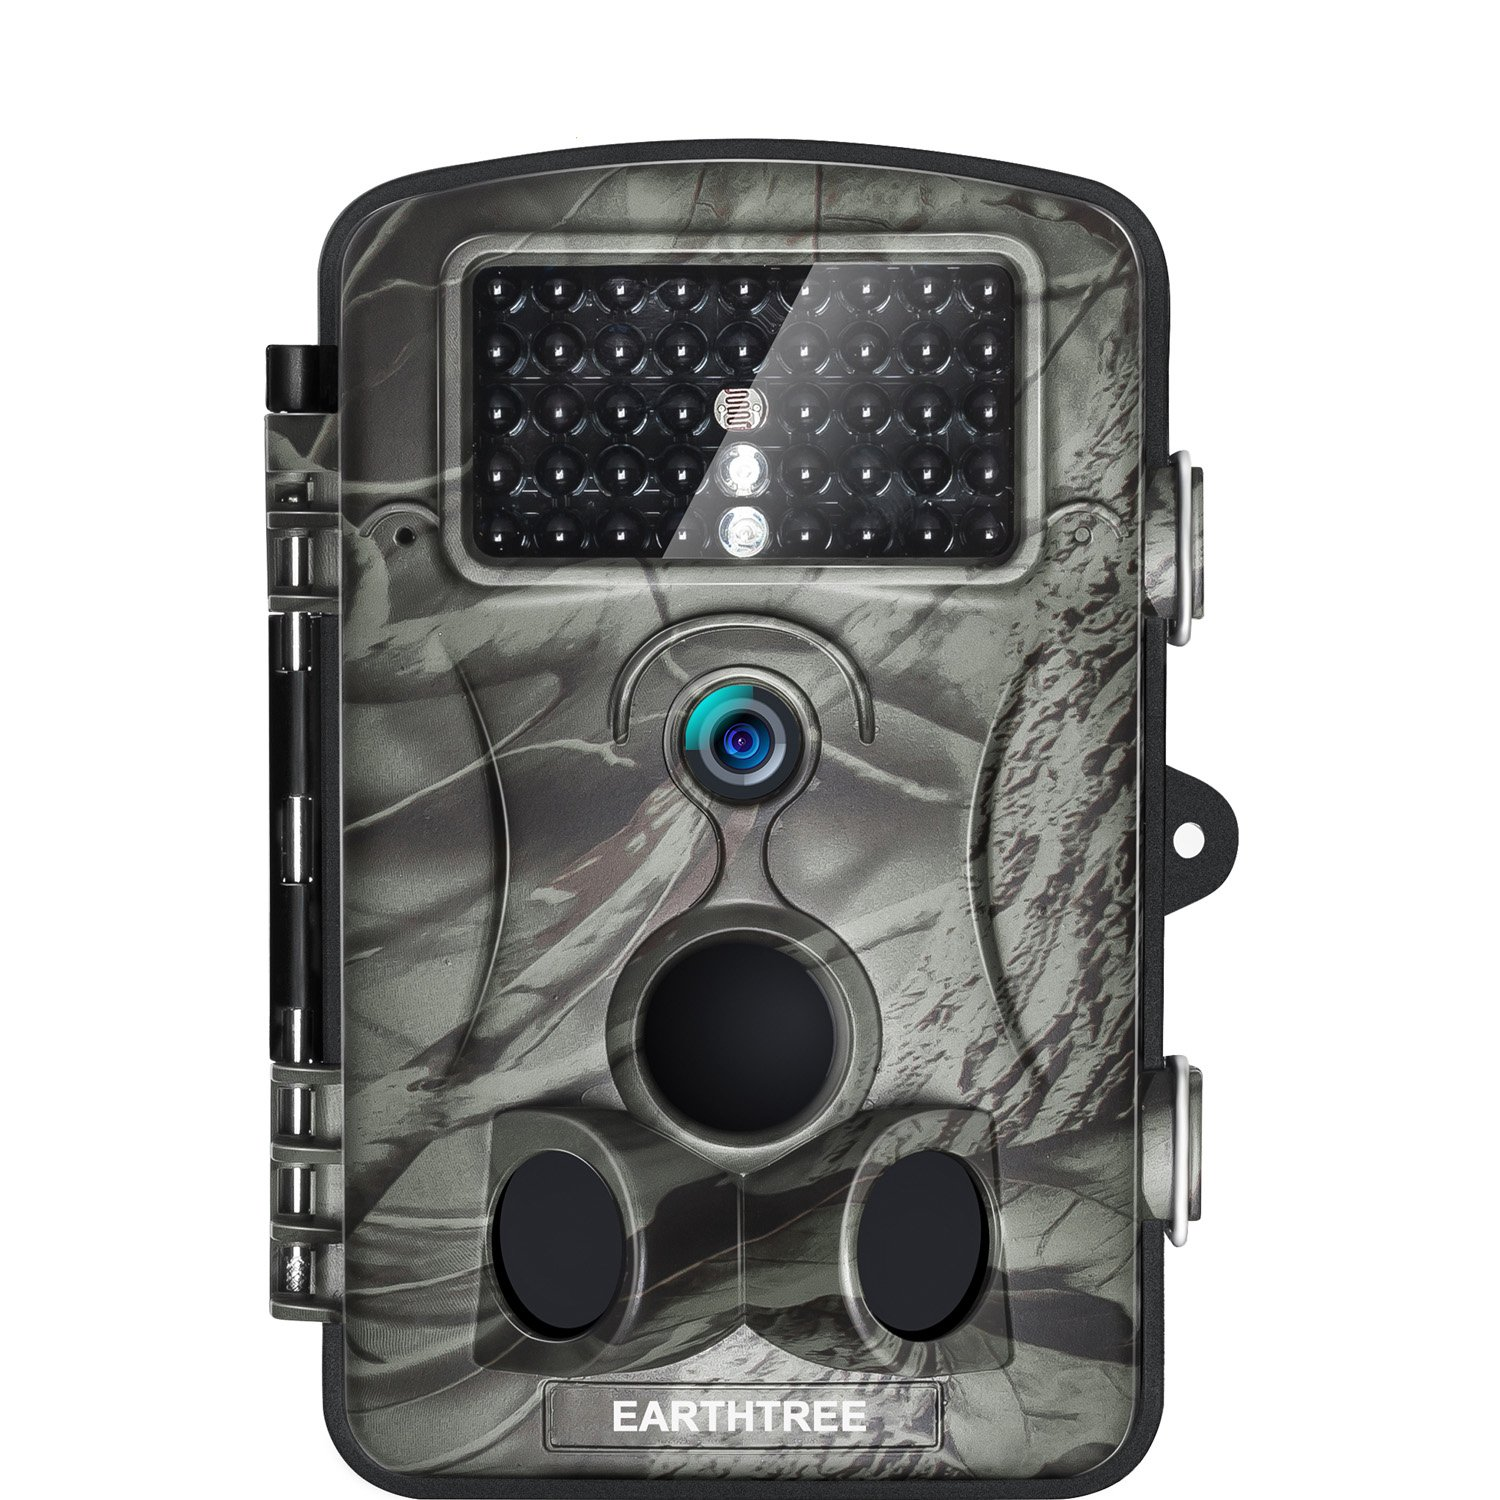 Earthtree Trail Camera 12MP 1080P FHD Game Hunting Camera with 120° Wide Detection Angel 42PCs 940nm IR LEDs Night Vision, 2.4'' LCD Display Wildlife Camera with IP54 Waterproof